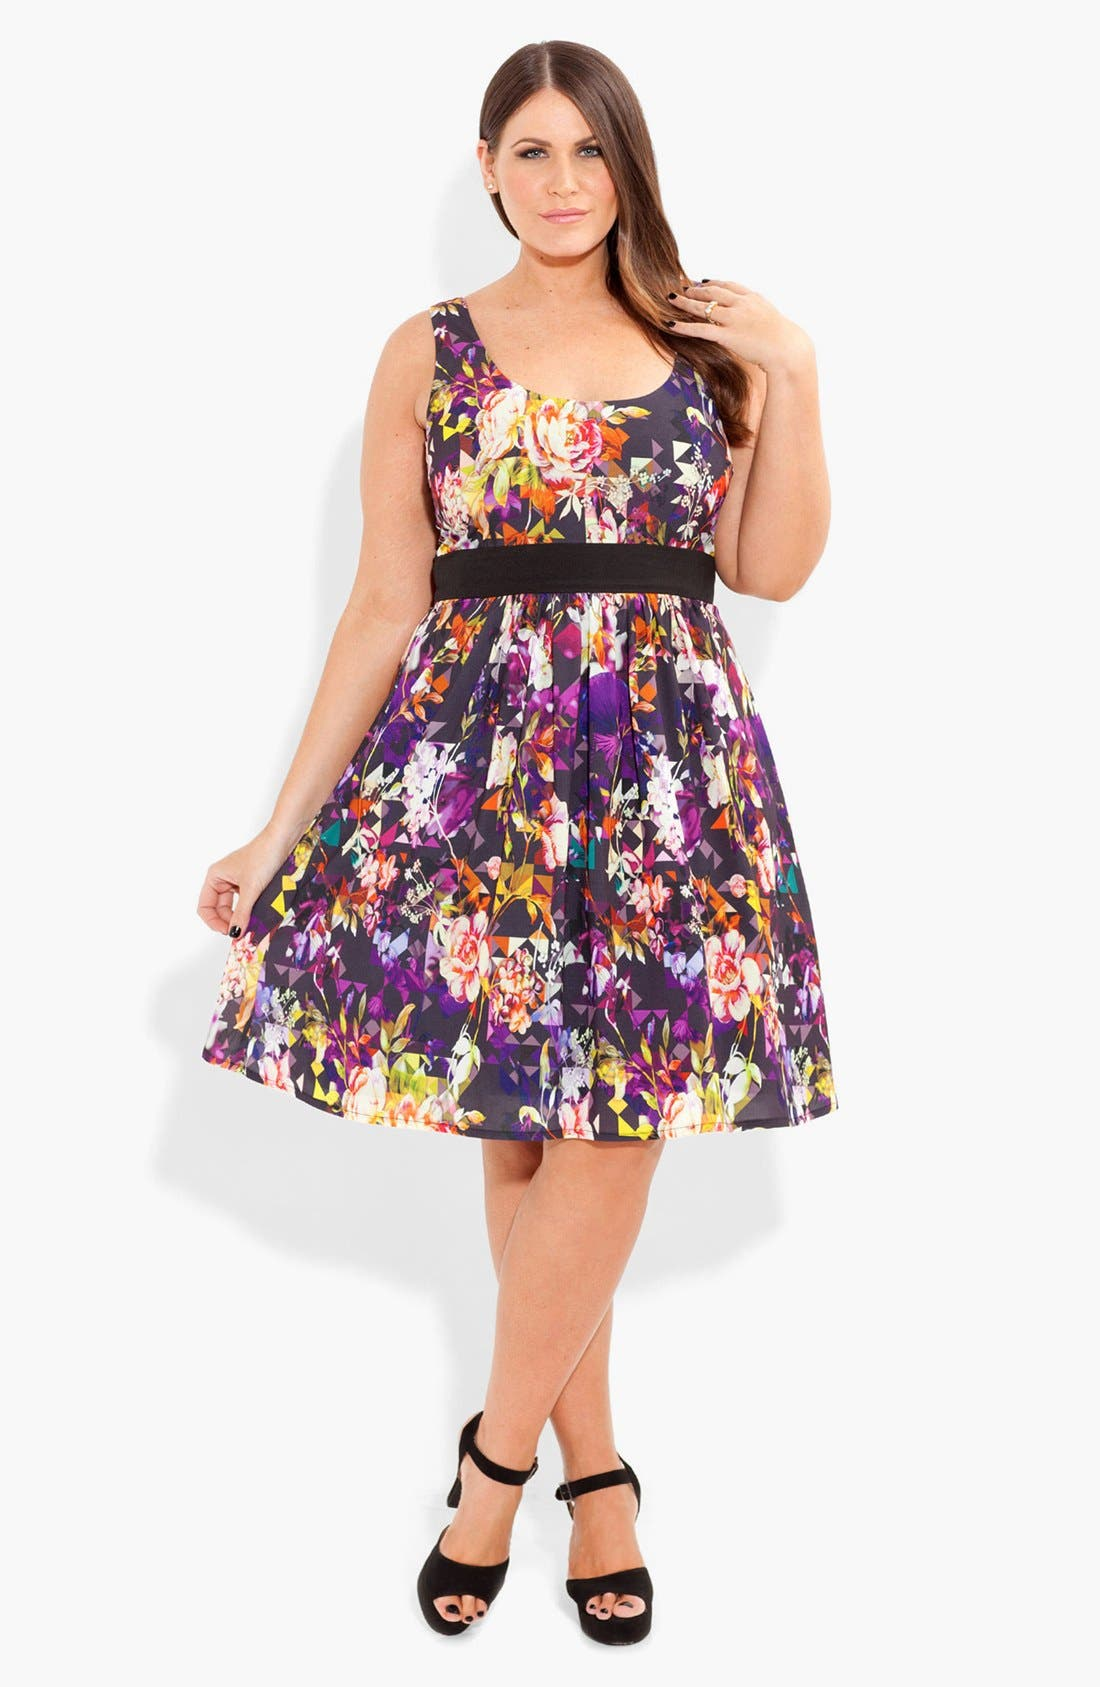 Alternate Image 1 Selected - City Chic Print Fit & Flare Dress (Plus Size)